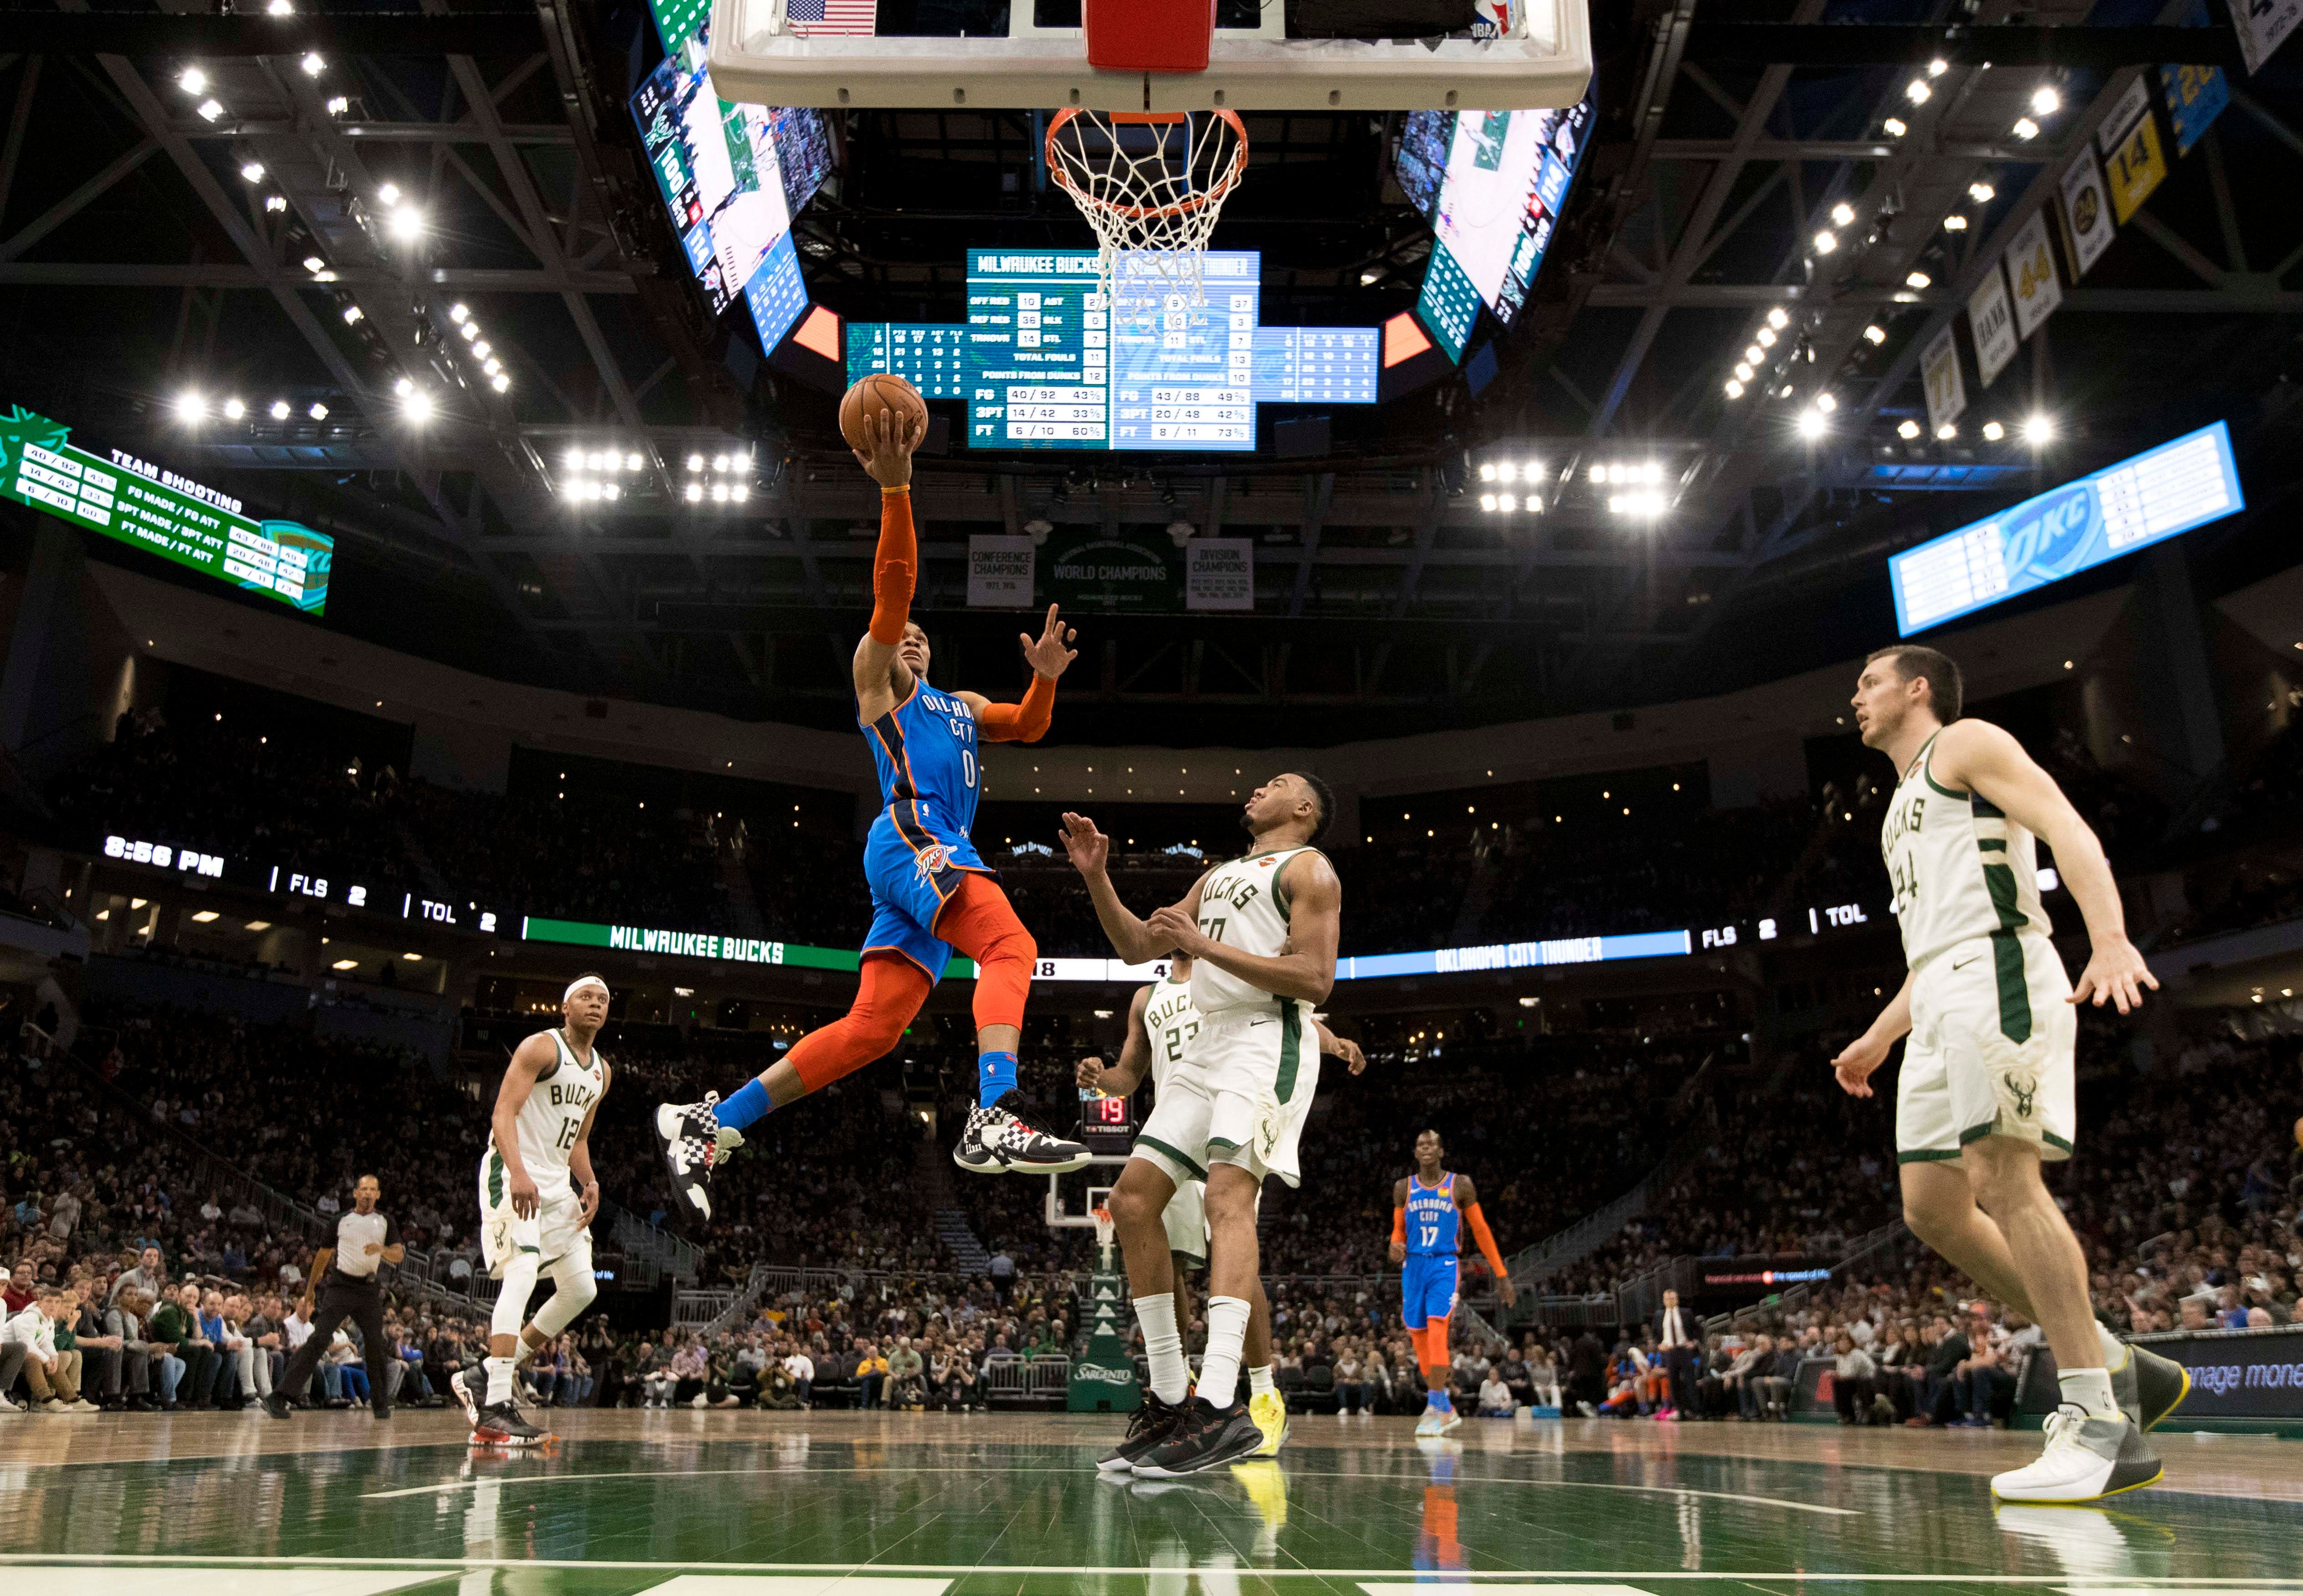 Thunder get 6th spot in West with win over Bucks | FOX Sports